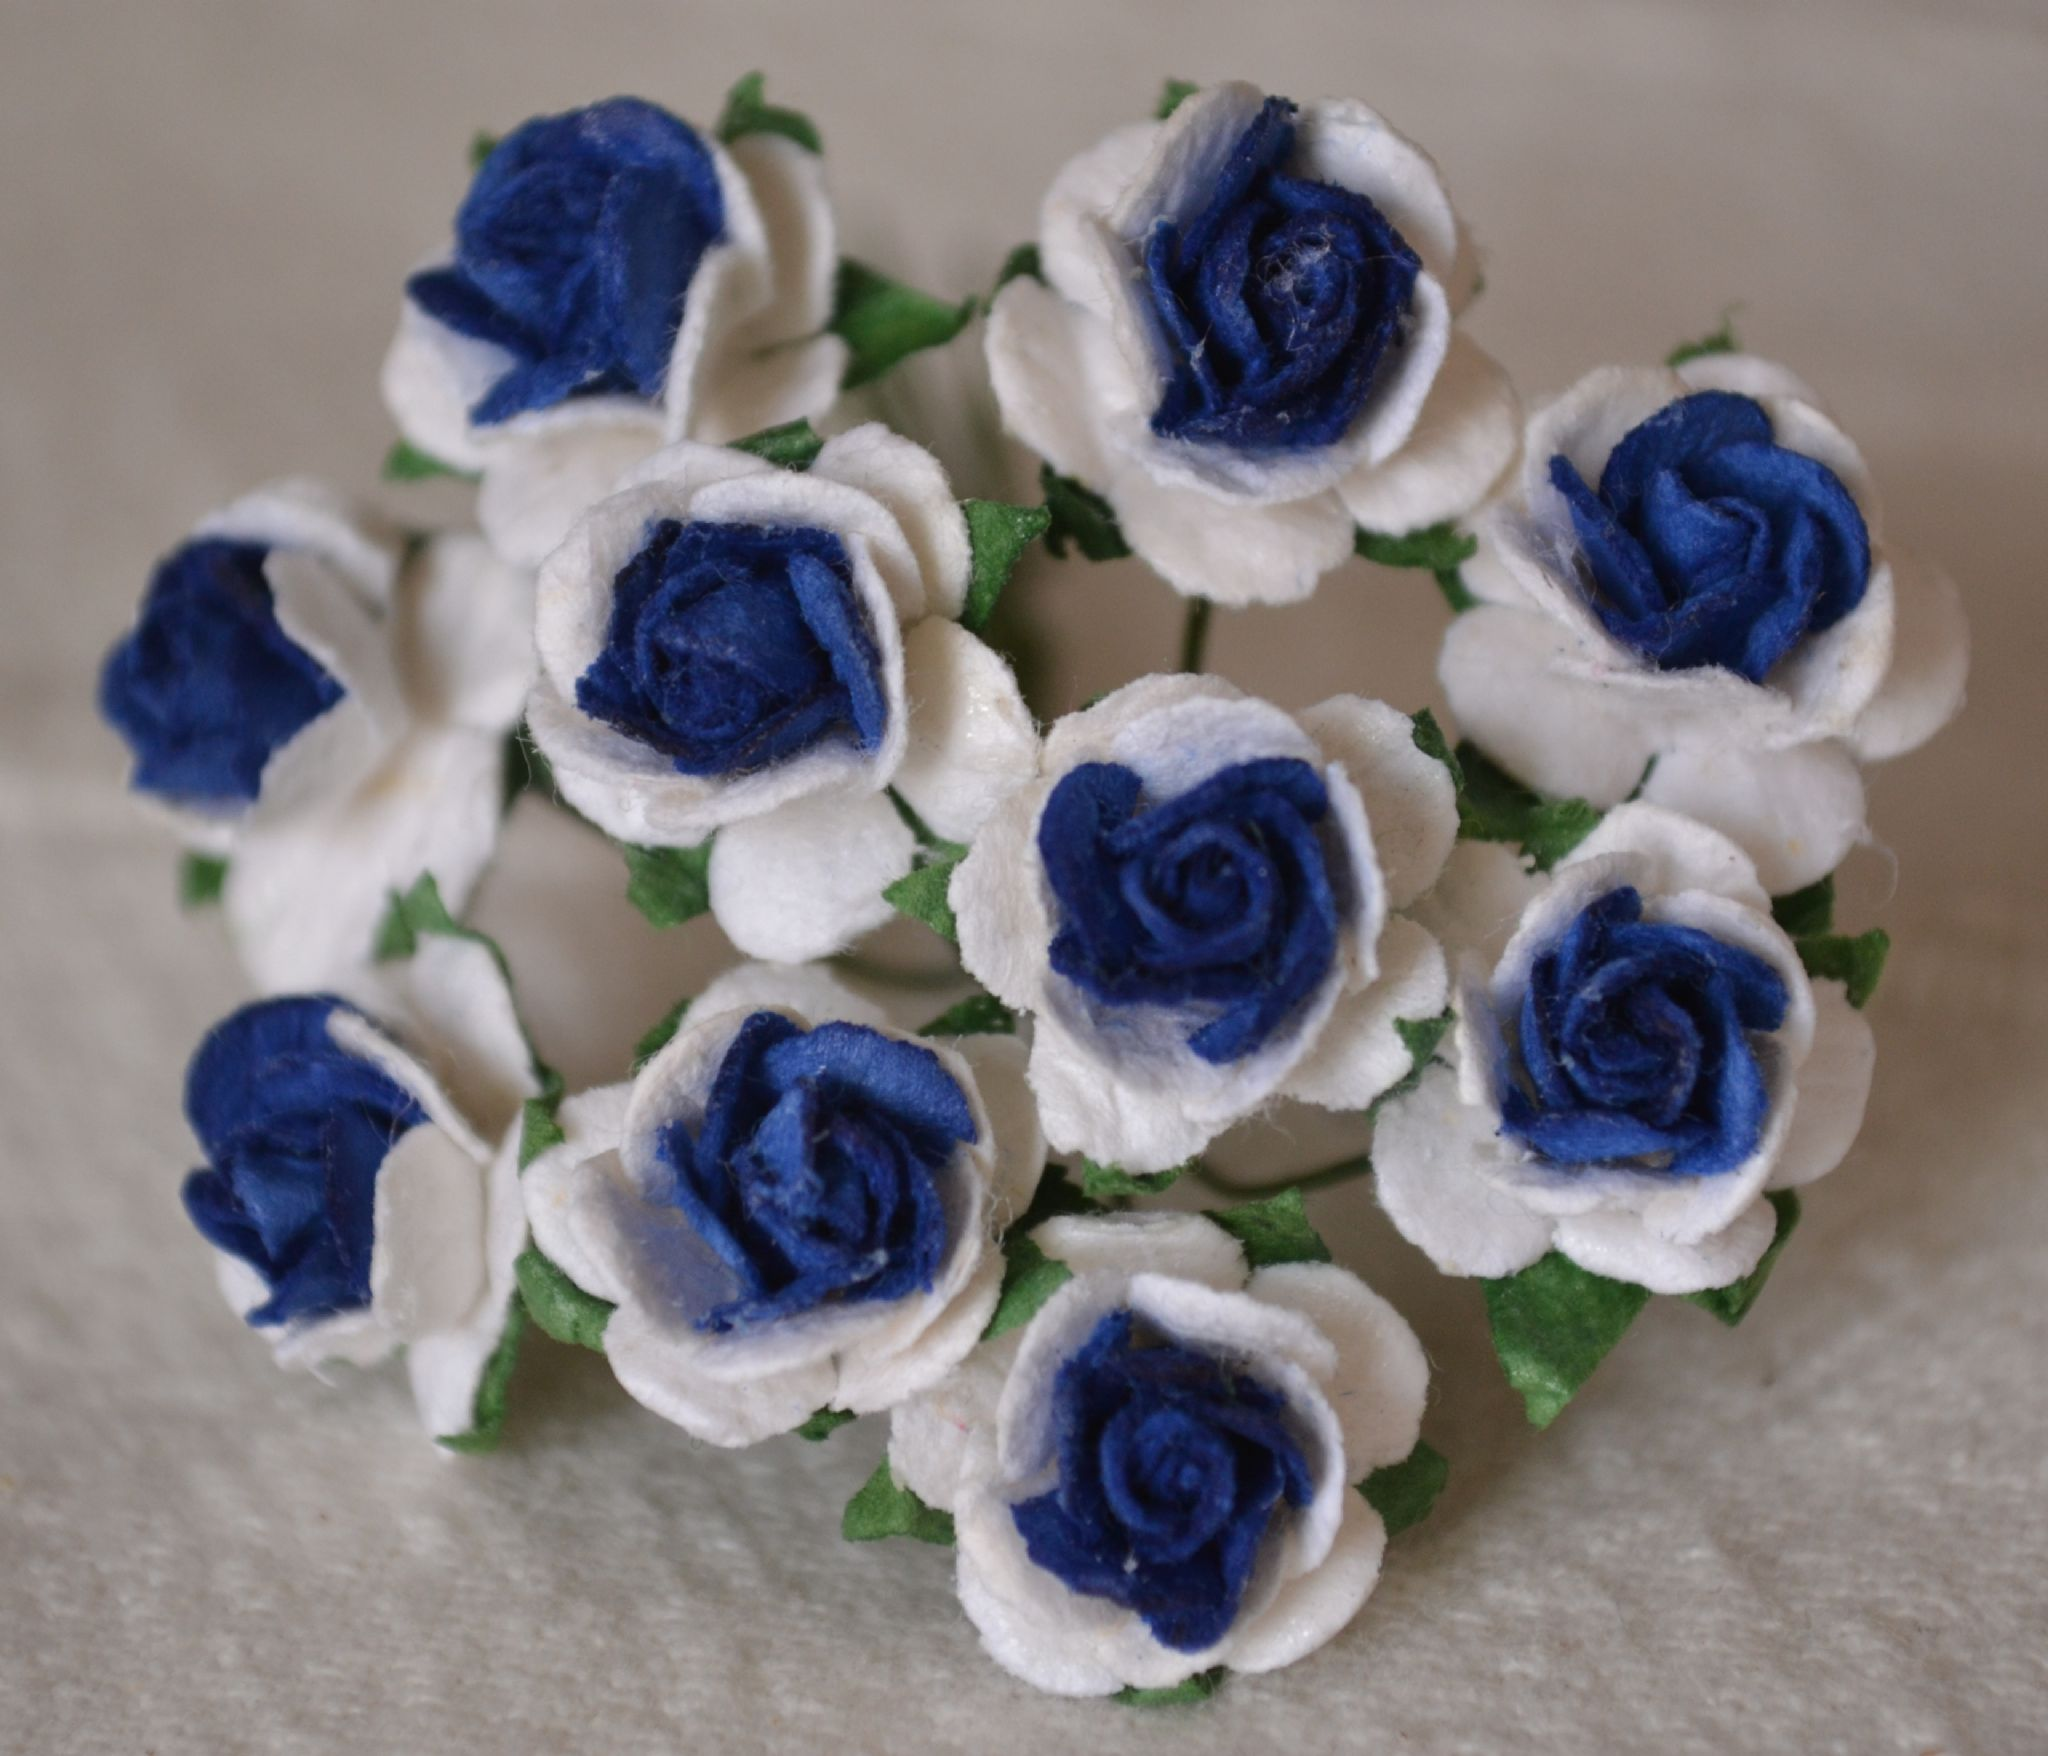 15cm royal blue center with white mulberry paper roses izmirmasajfo